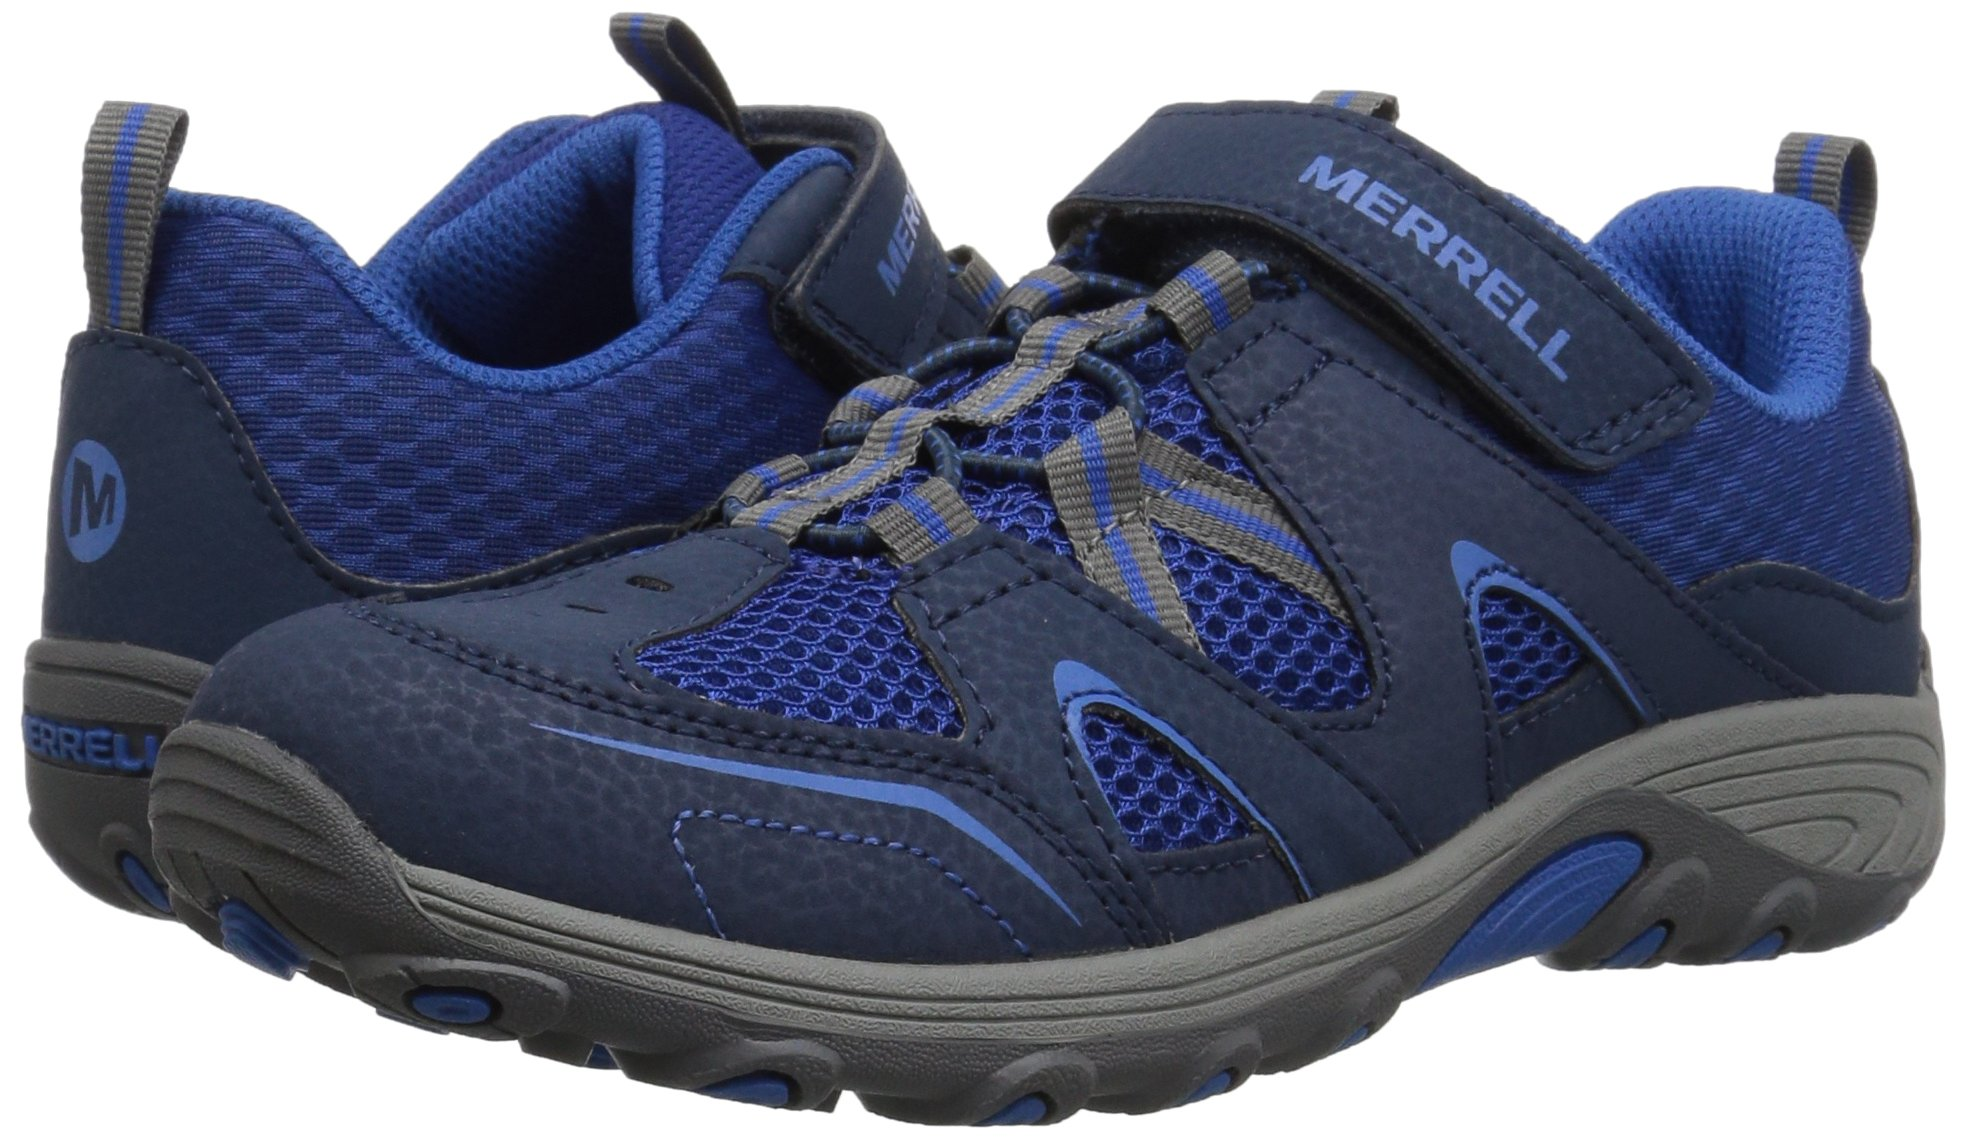 Merrell Trail Chaser Hiking Shoe, Navy, 4 M US Big Kid by Merrell (Image #6)